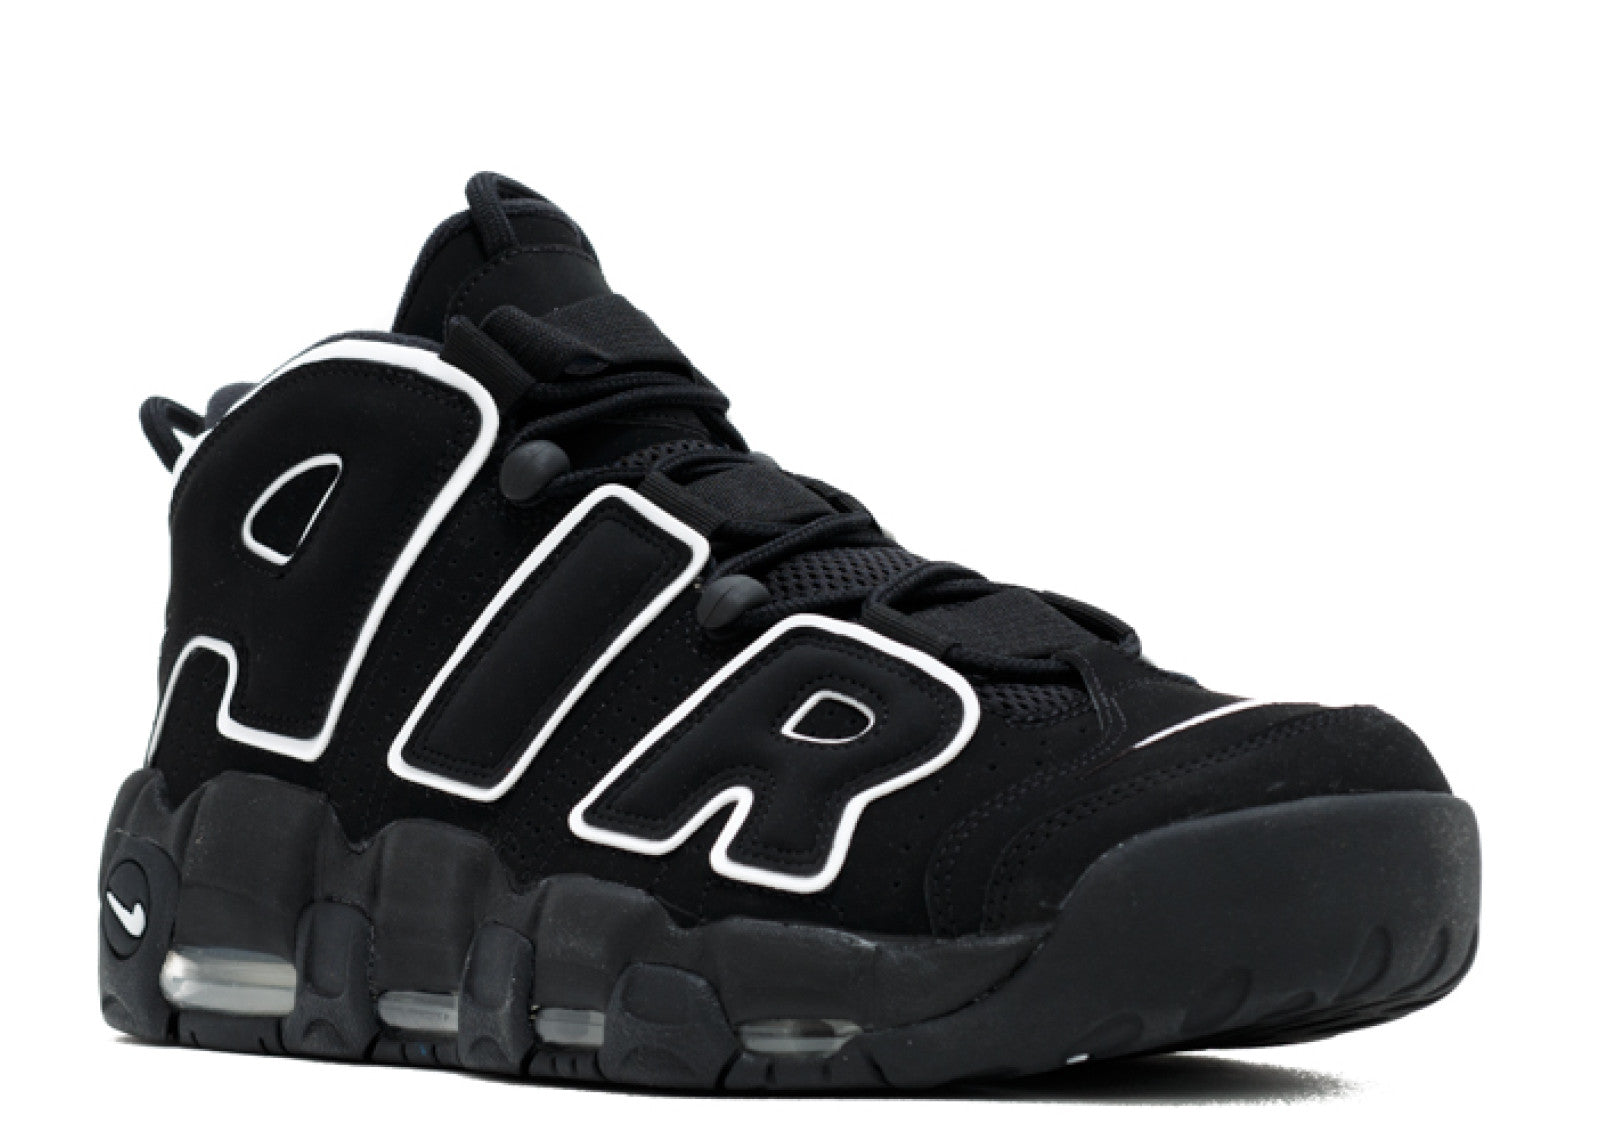 Nike Air More Uptempo Black White (2016) 414962 002